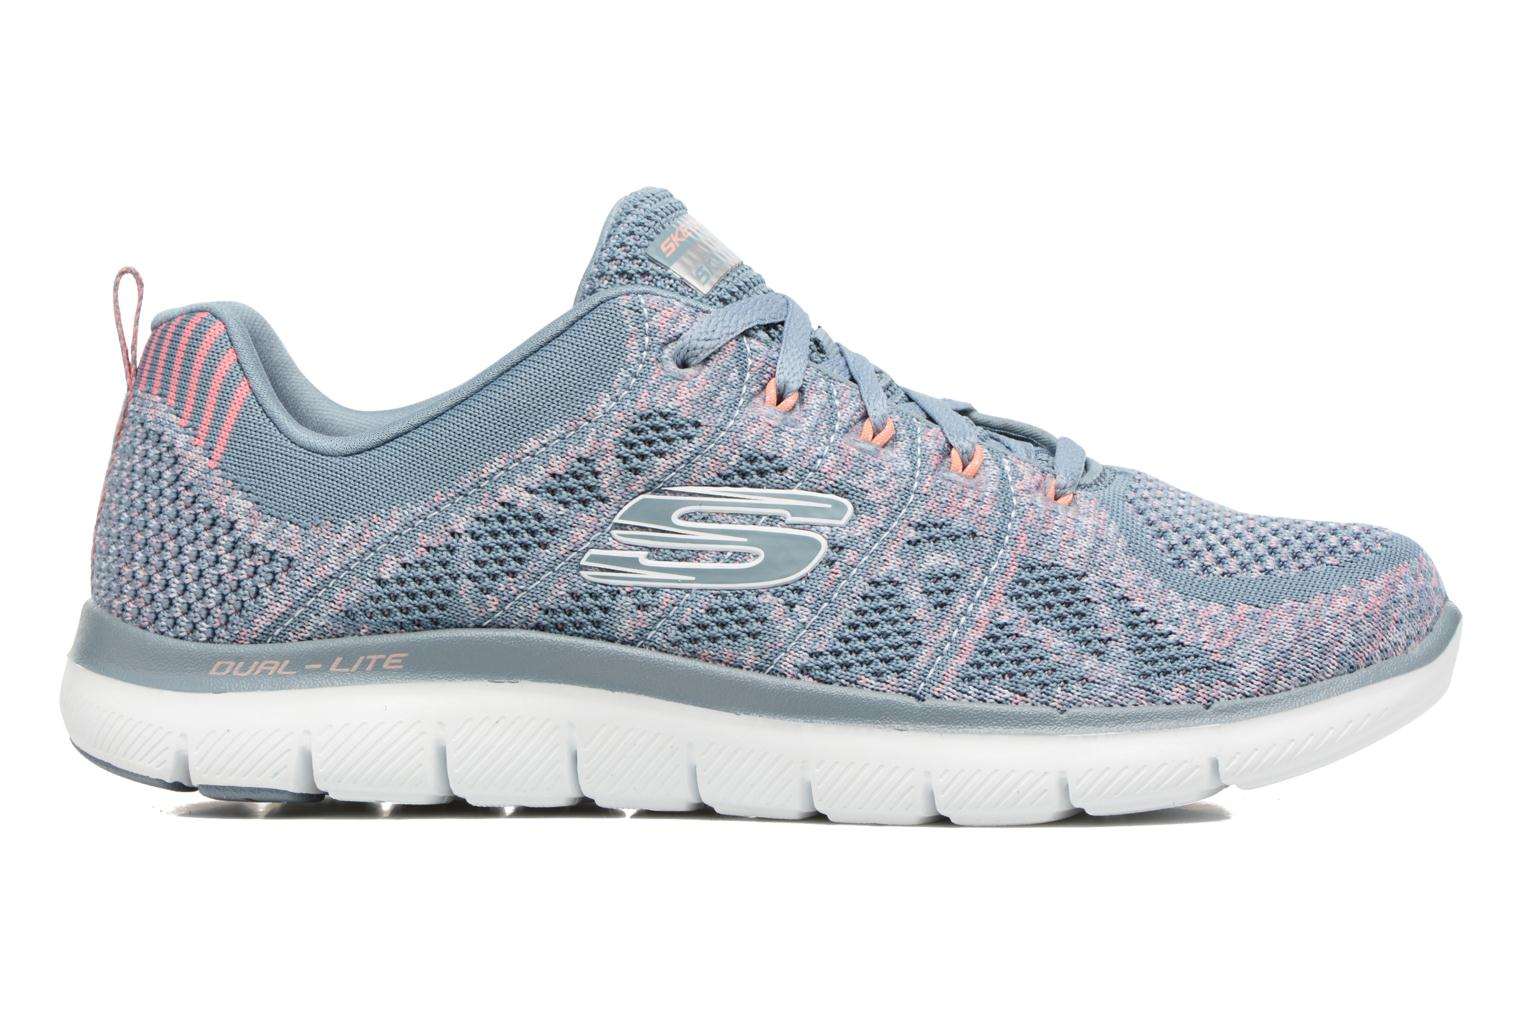 SLT Skechers Flex Appeal 2 0 New Gem xwY7wqra